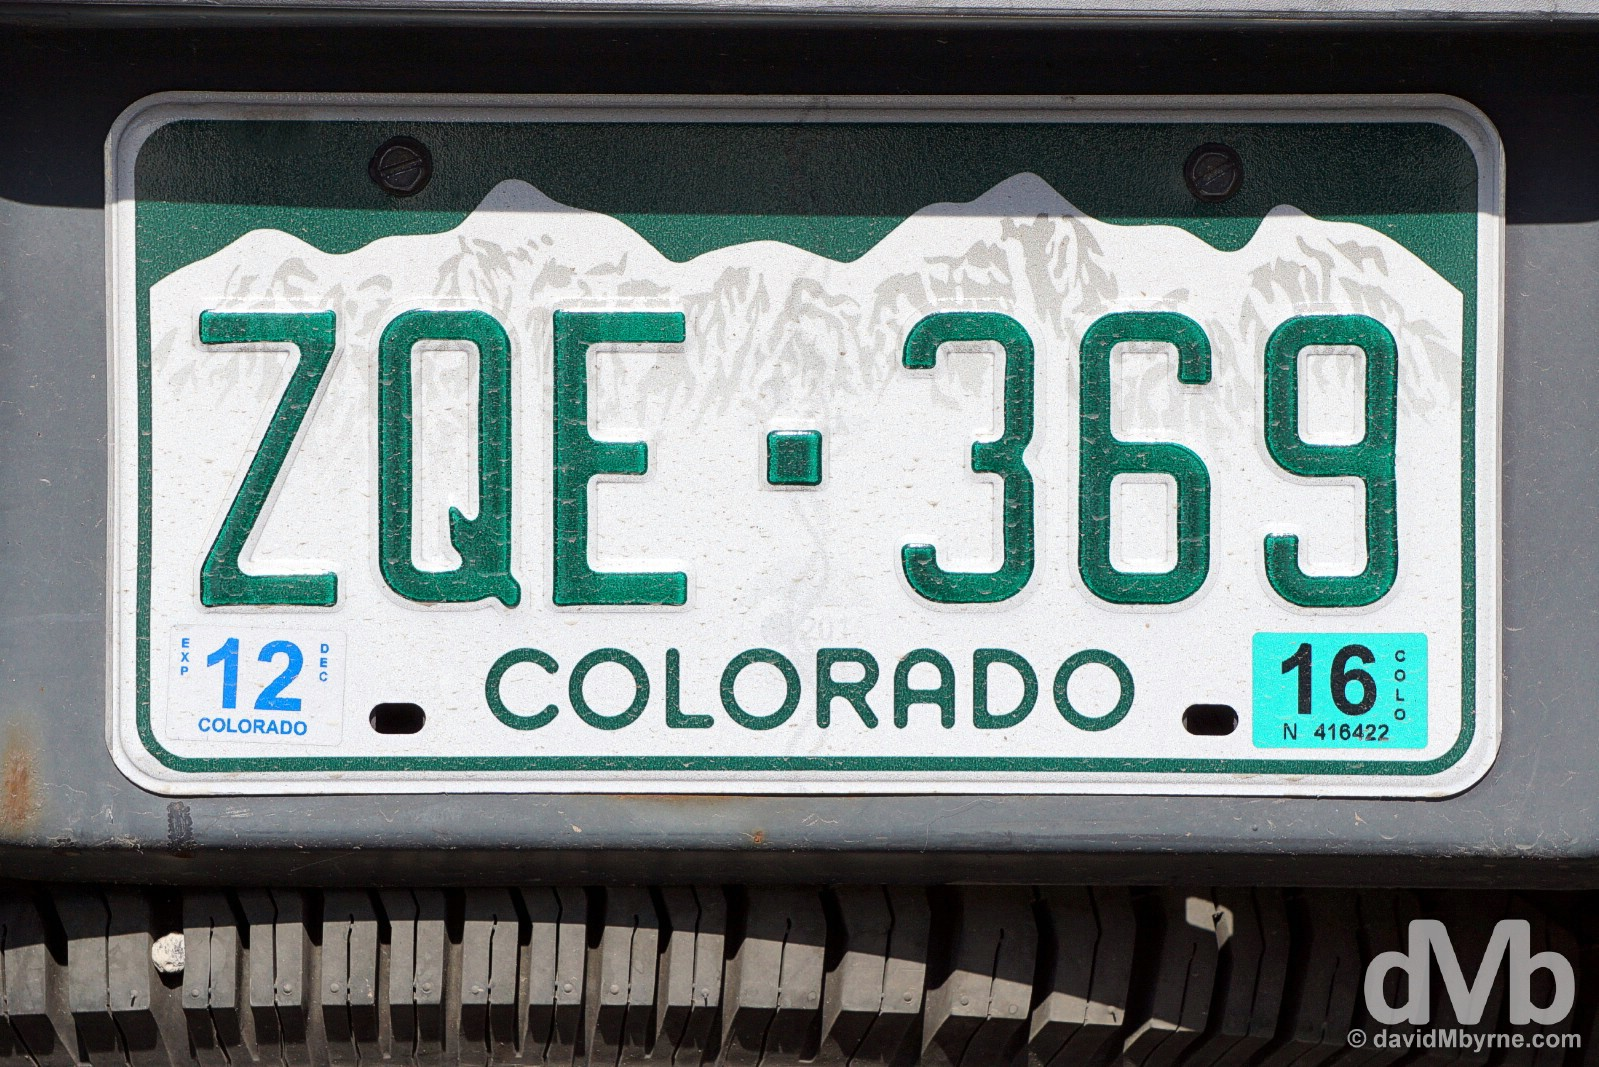 Colorado license plate. Durango, southern Colorado. September 12, 2016.